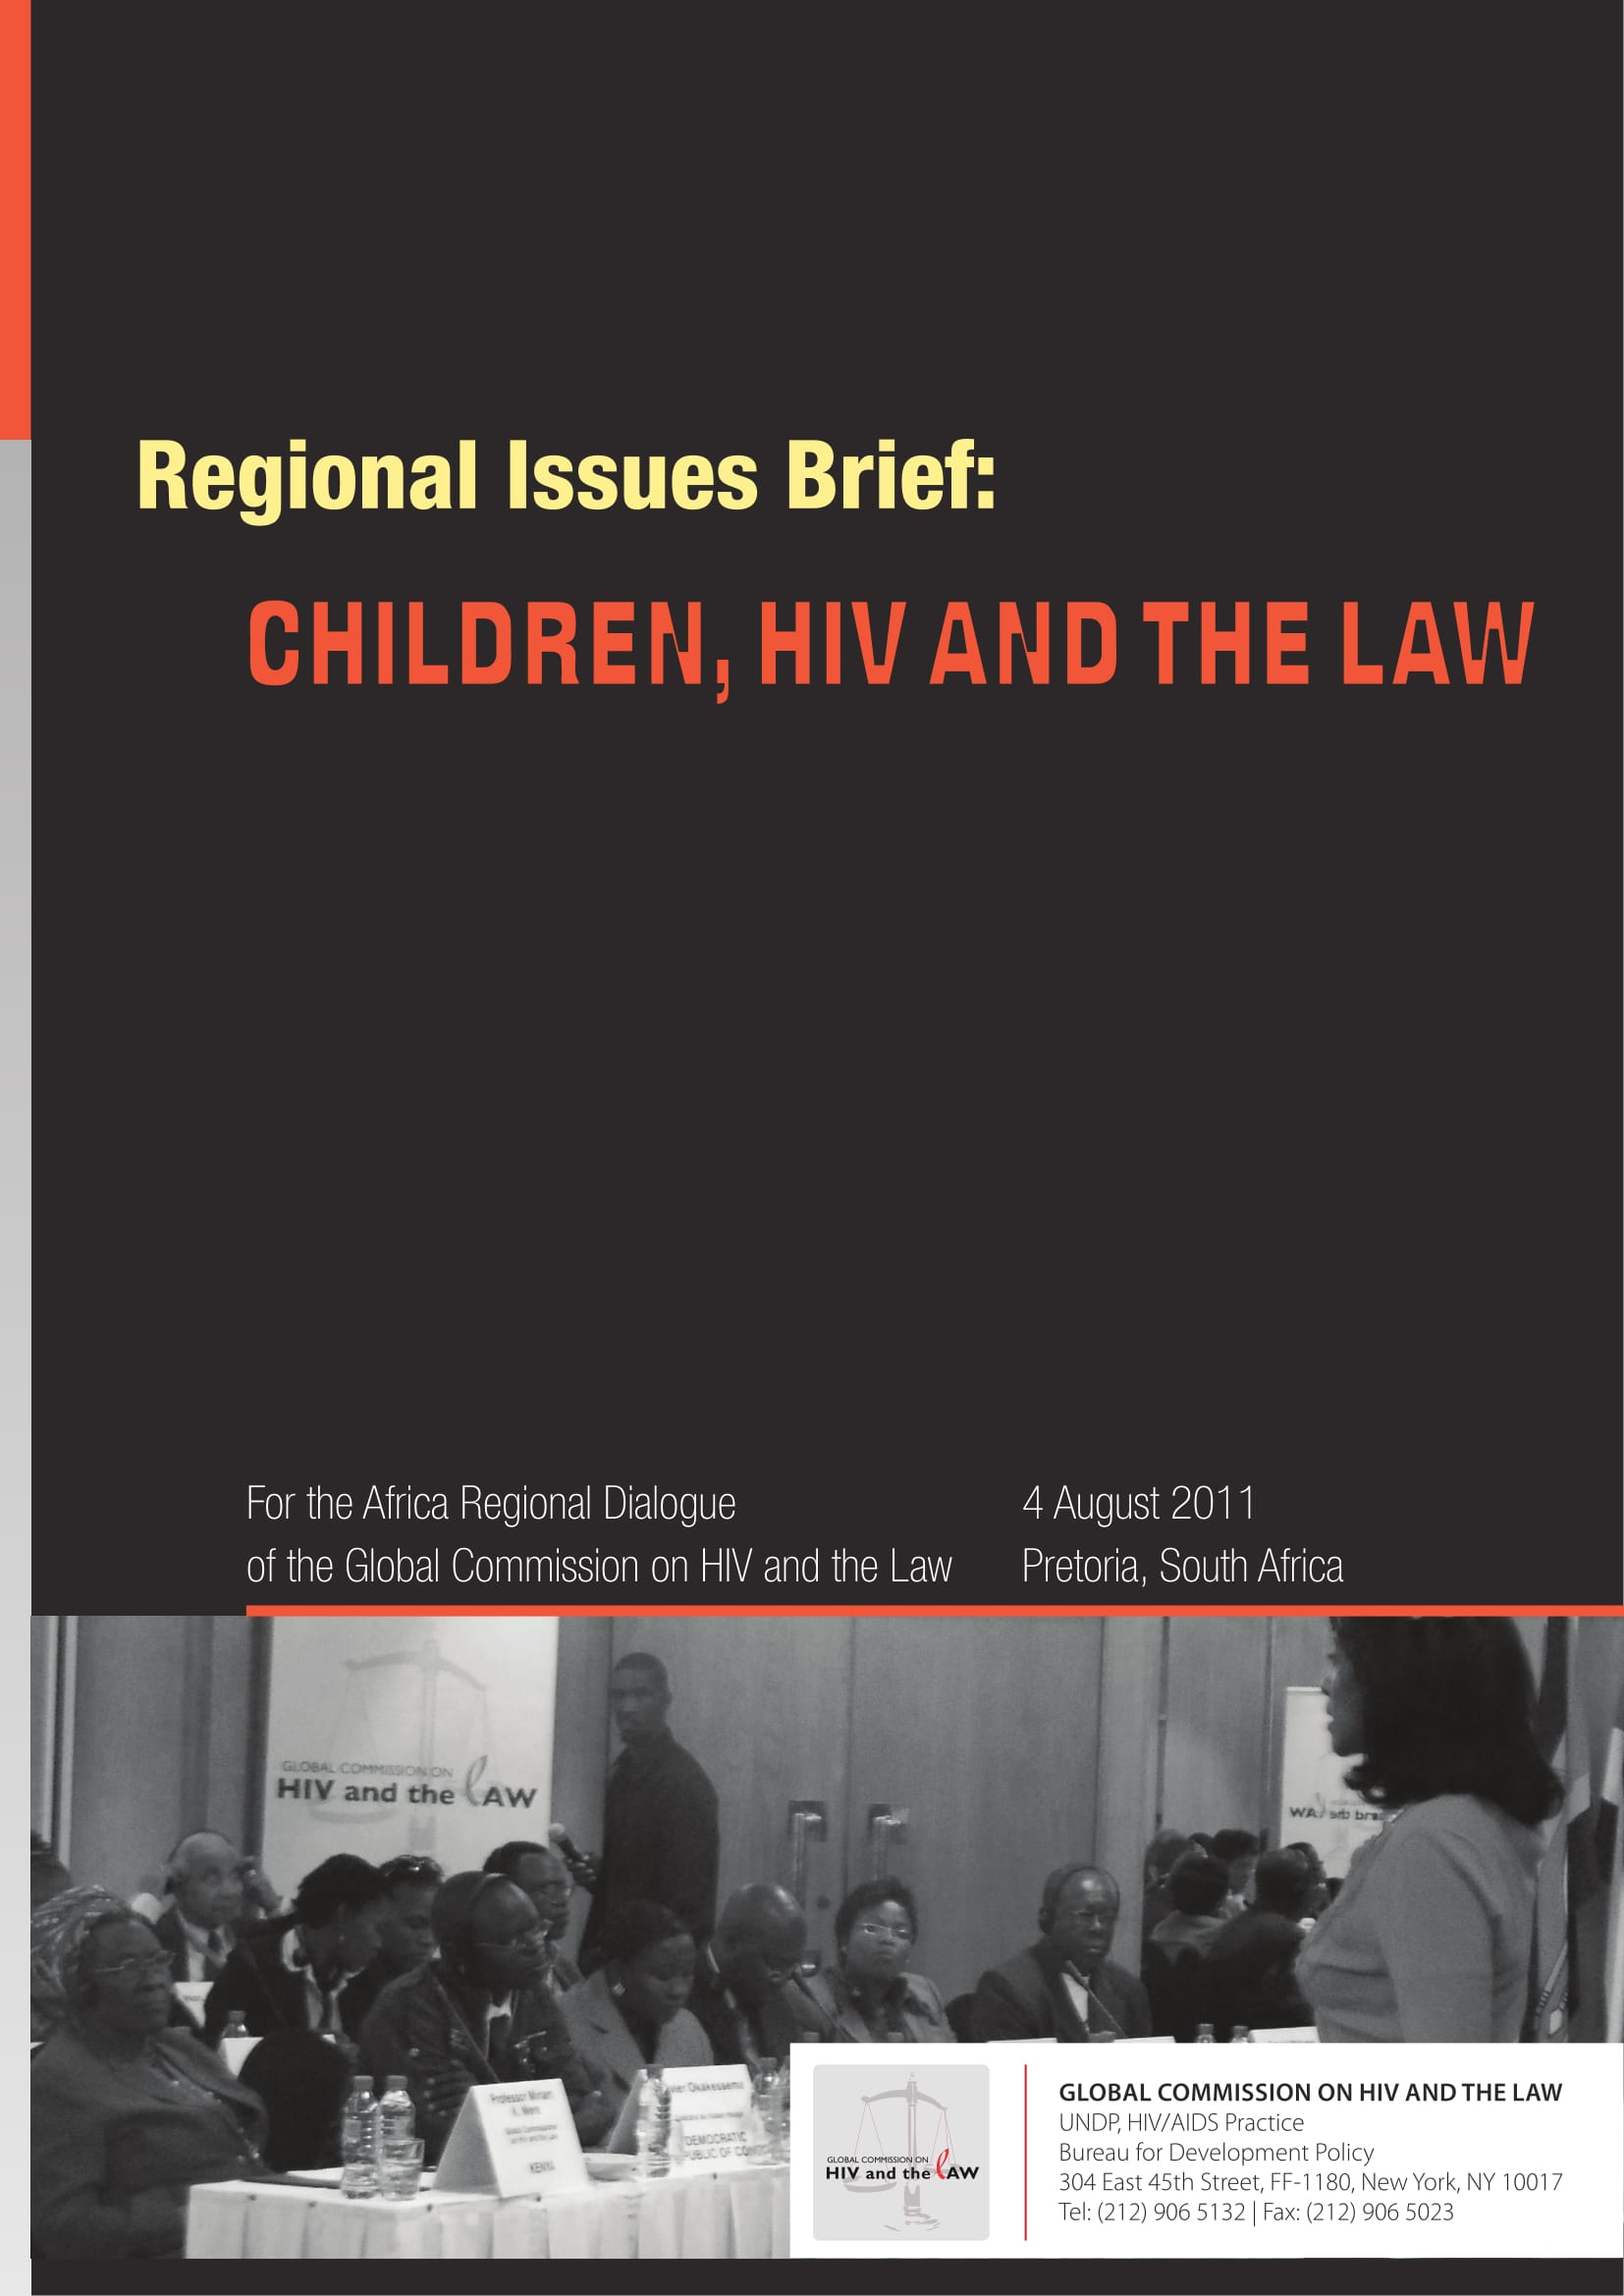 Regional issues brief: Children, HIV and the law